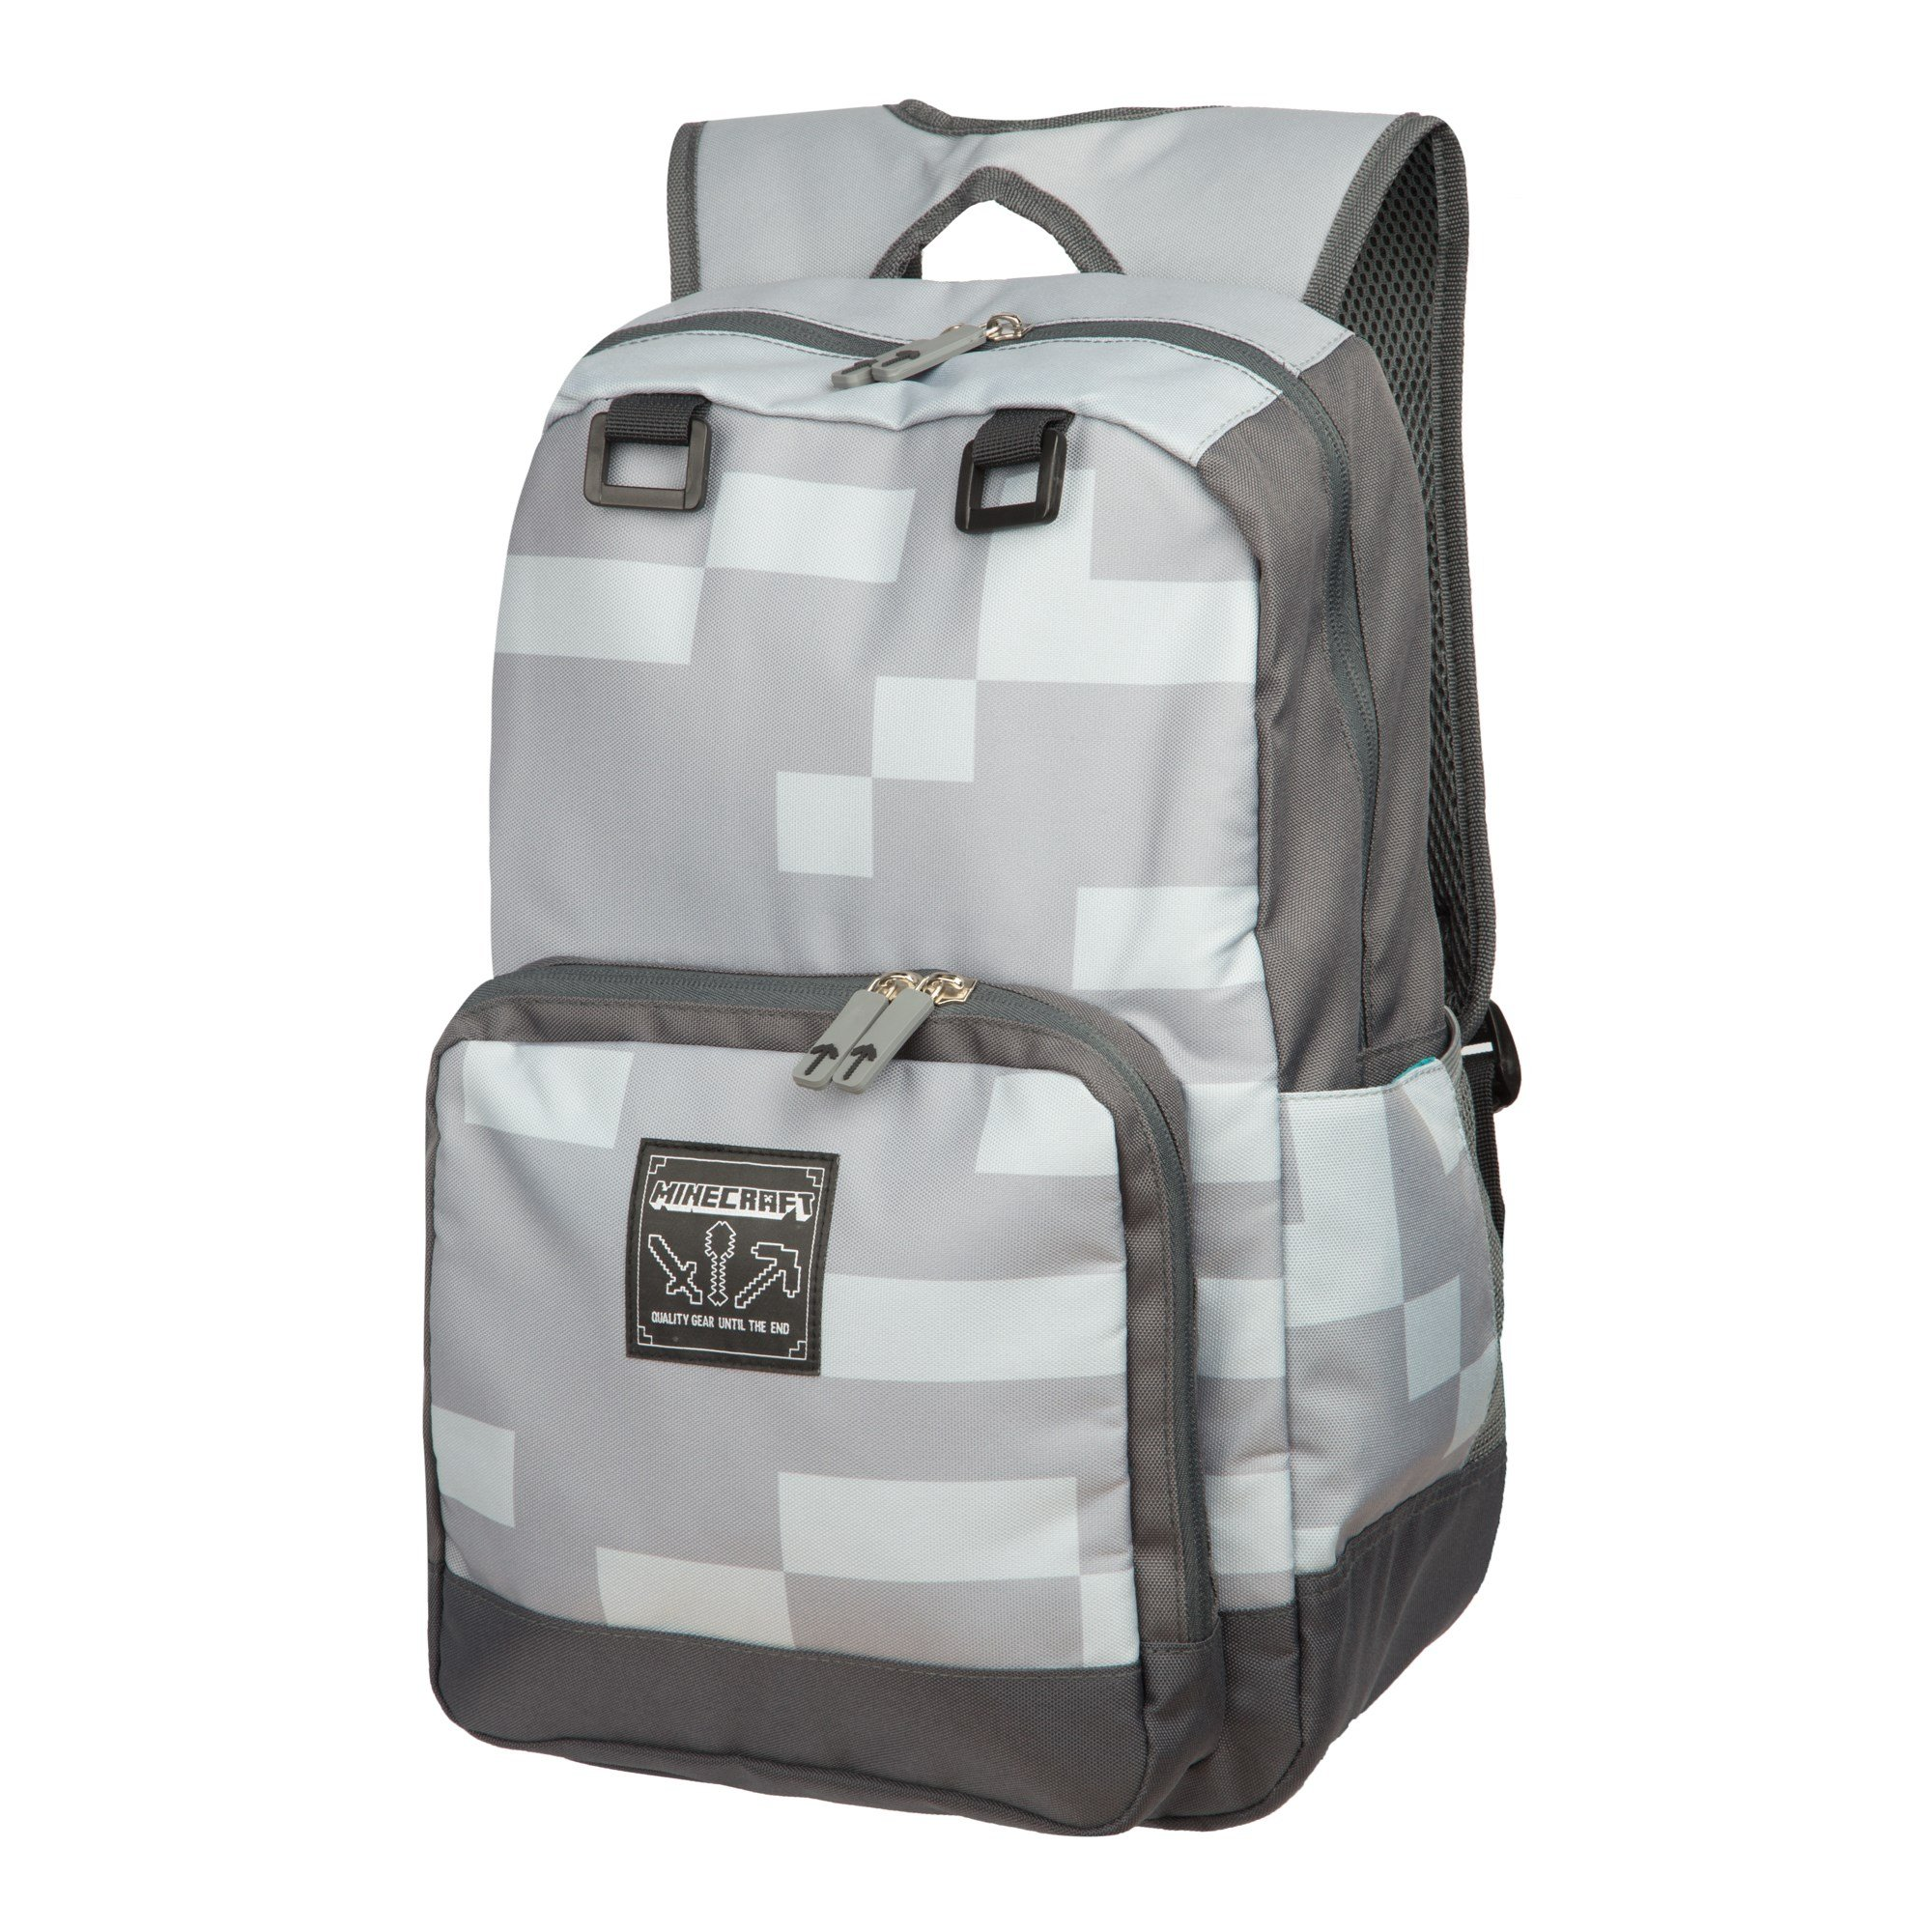 JINX Minecraft Miner Kids Backpack (Grey, 18'') for School, Camping & Fun by JINX